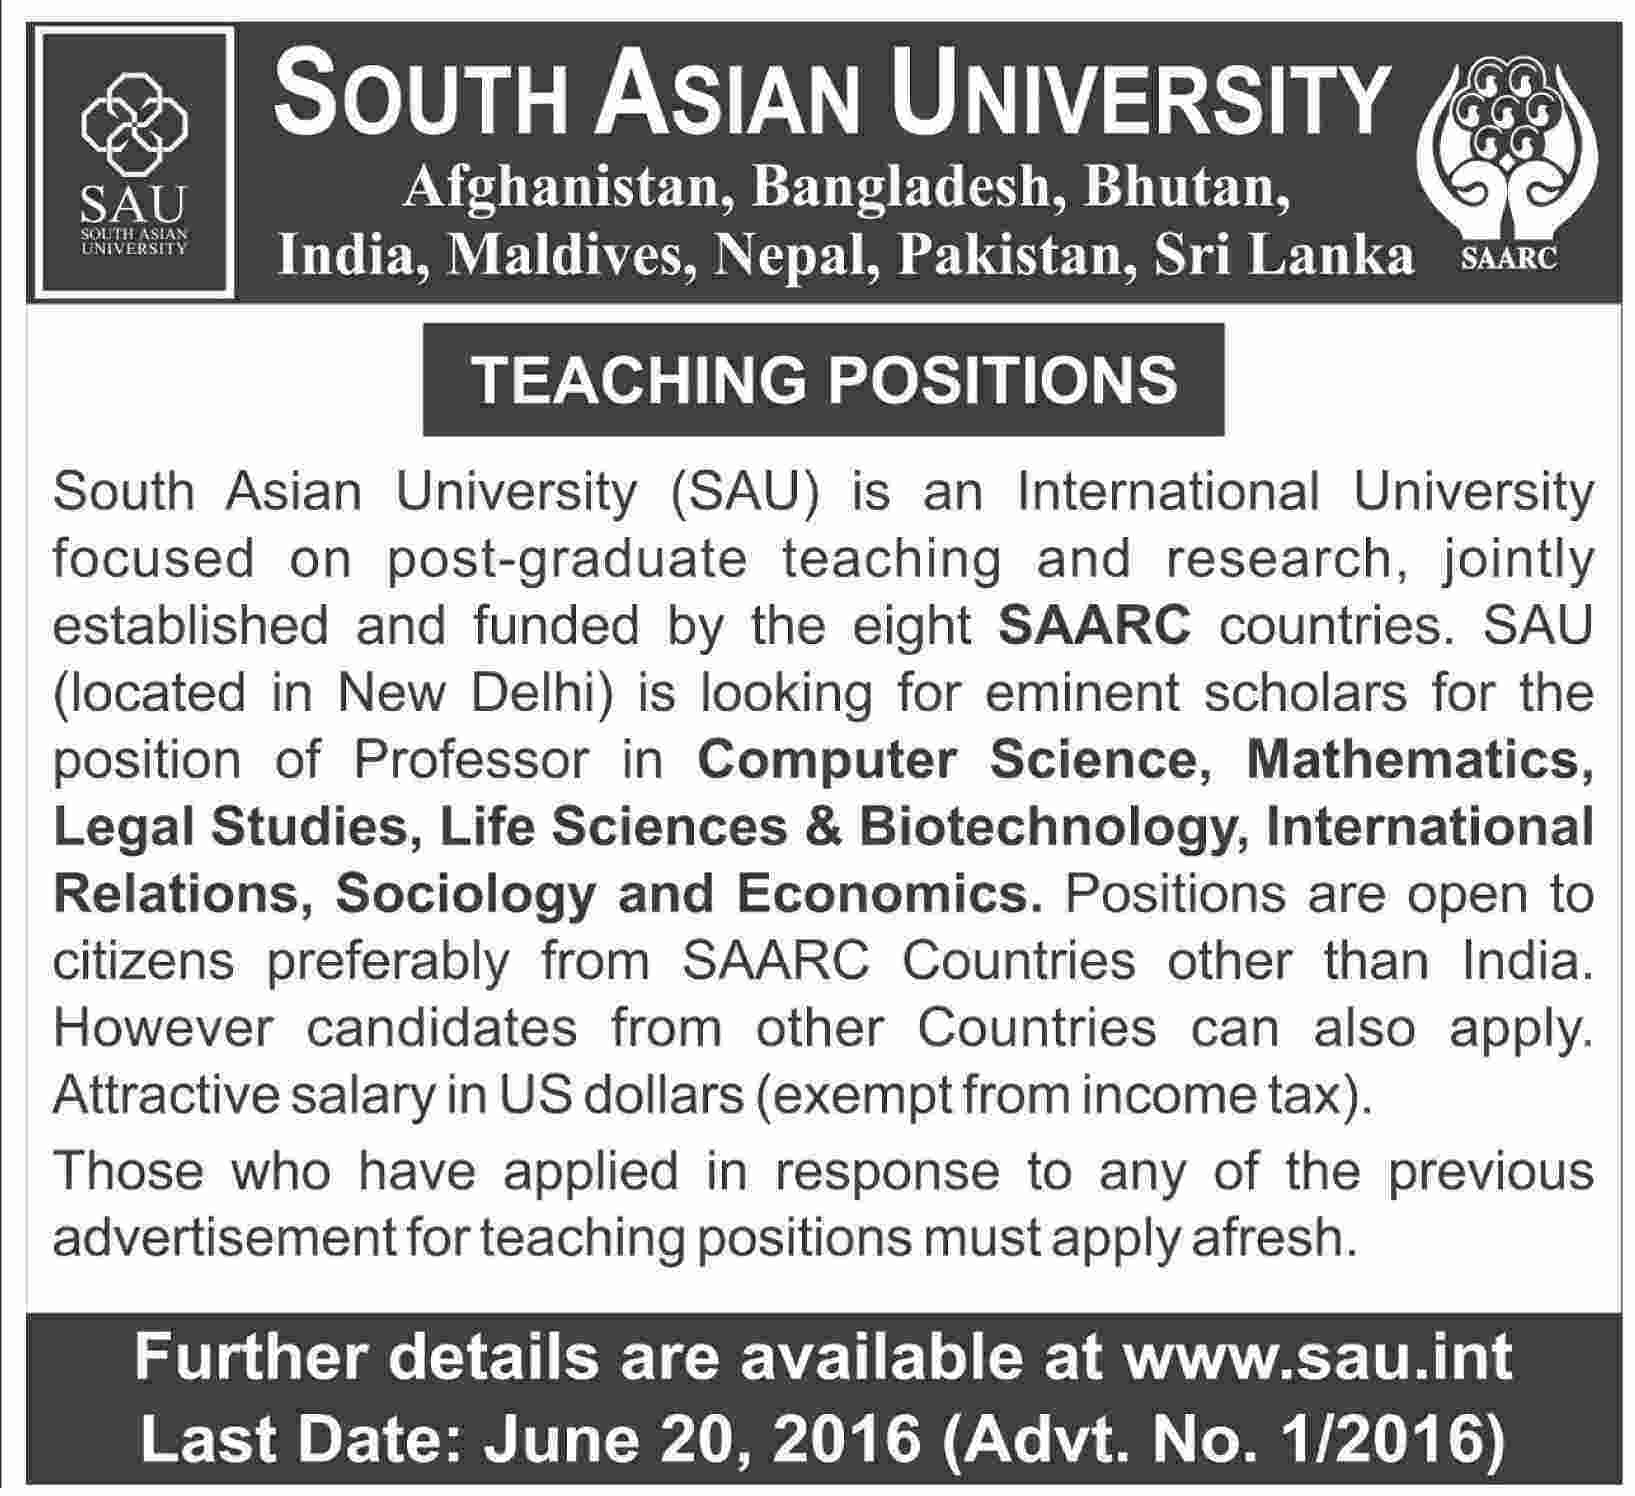 South Asian University Career Opportunities